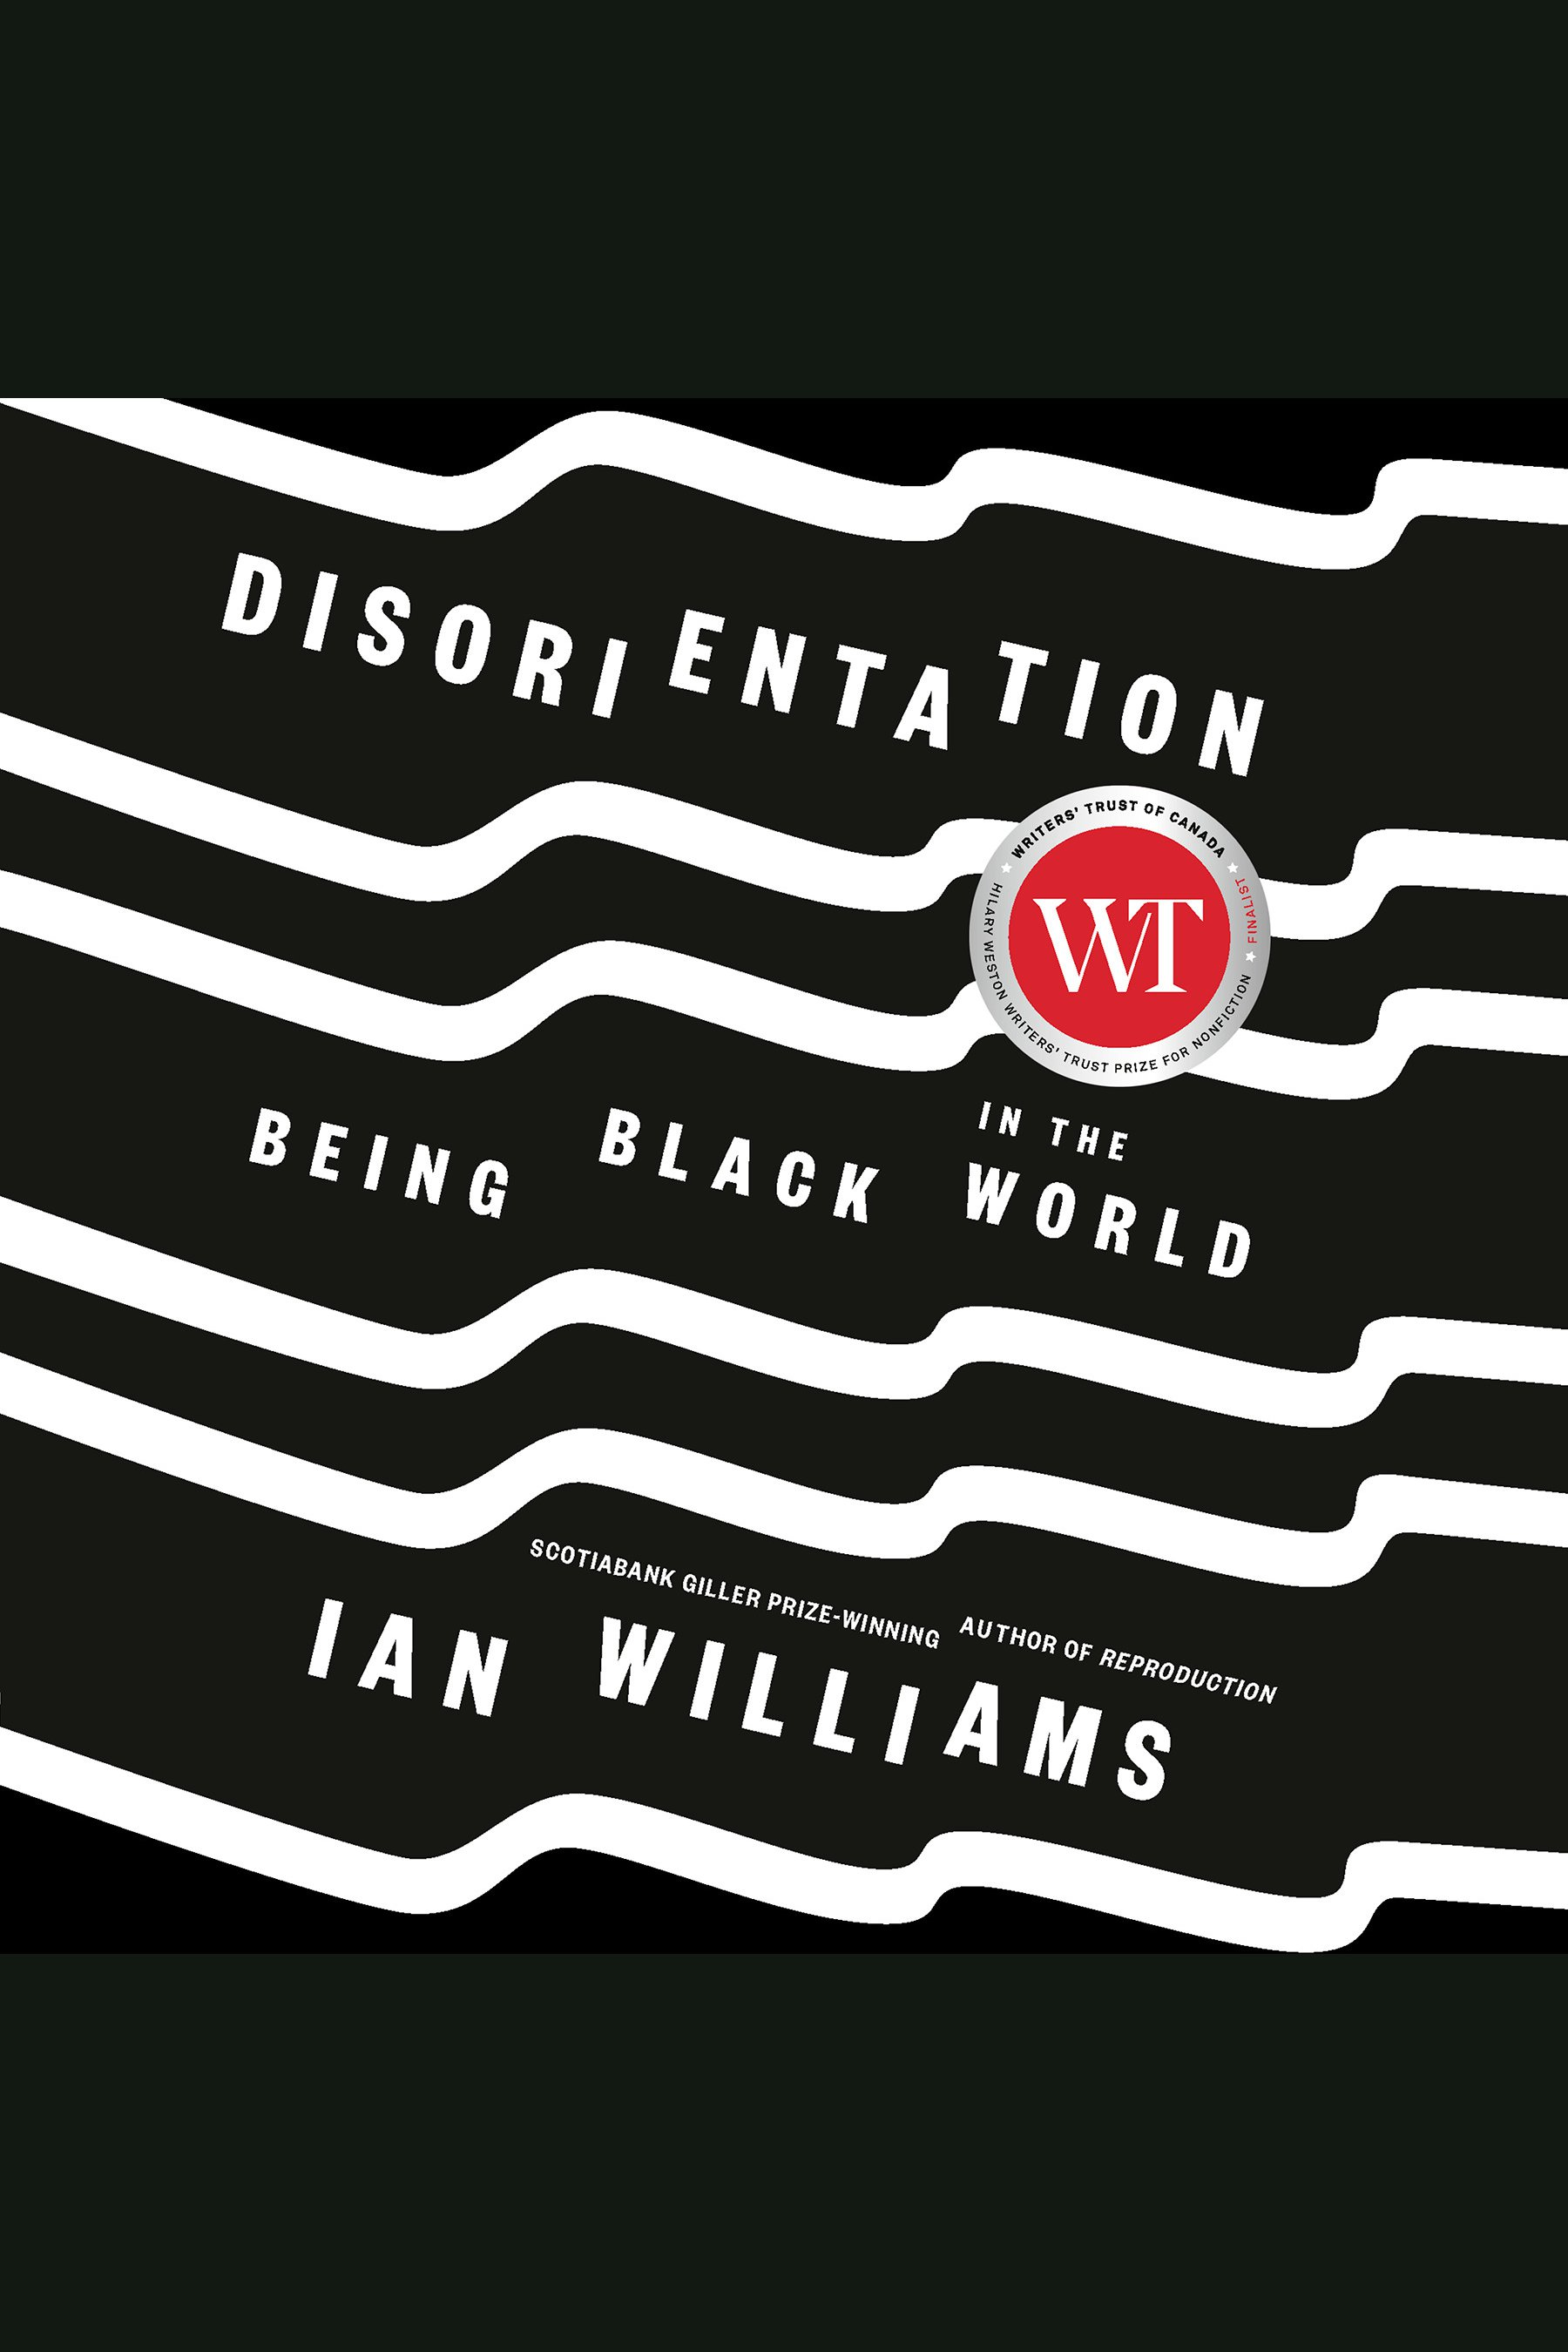 Disorientation Being Black in the World